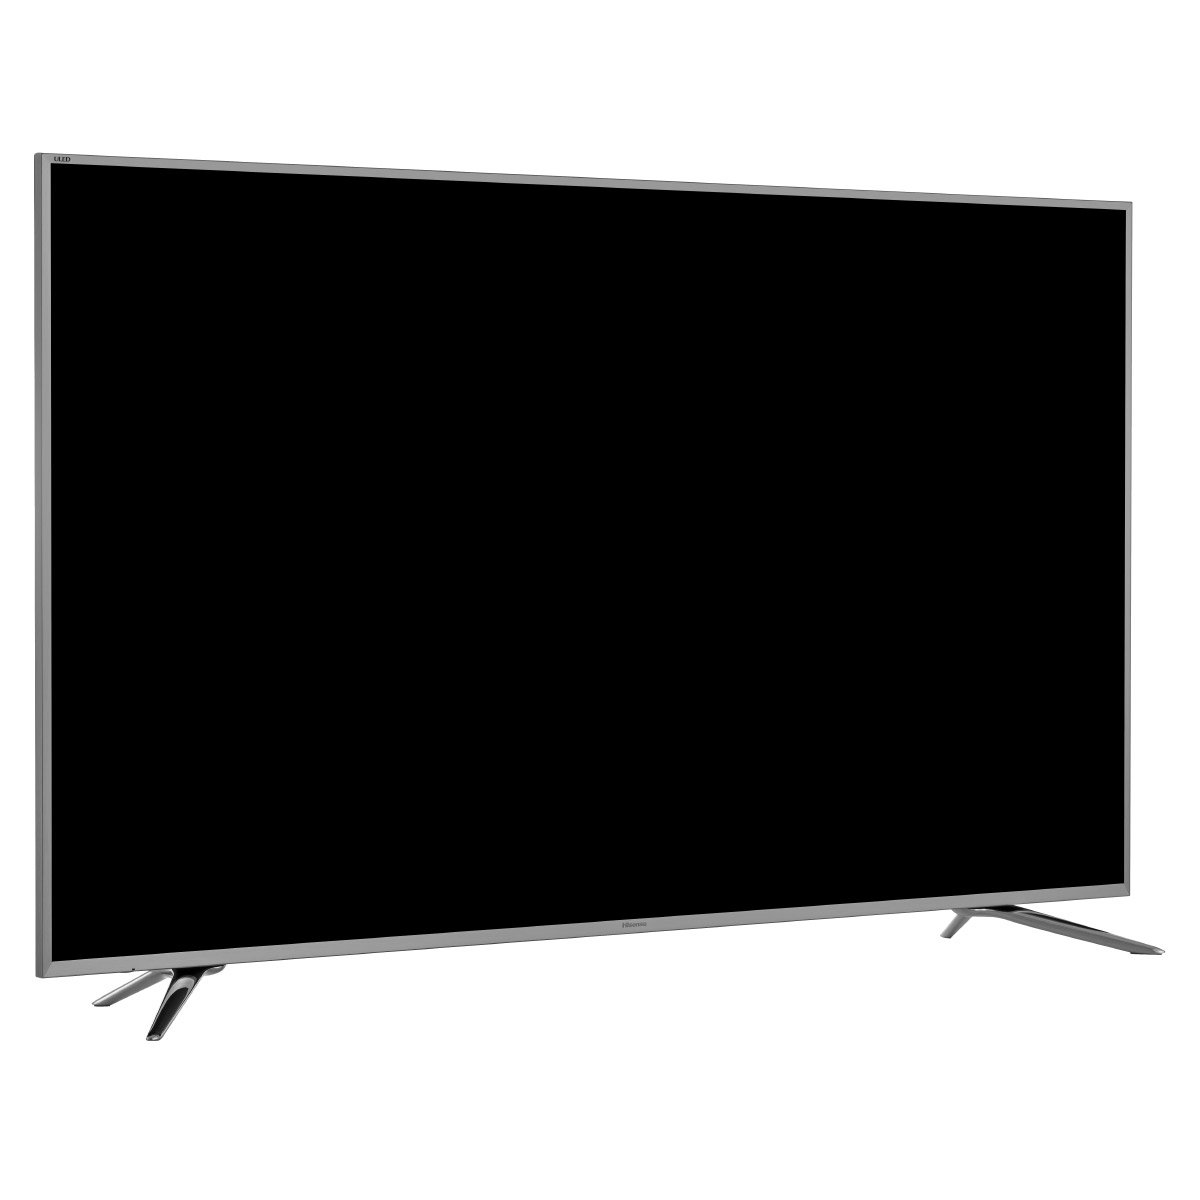 75 Inch 189cm Smart 4k Ultra Hd Uled Lcd Tv 75p7